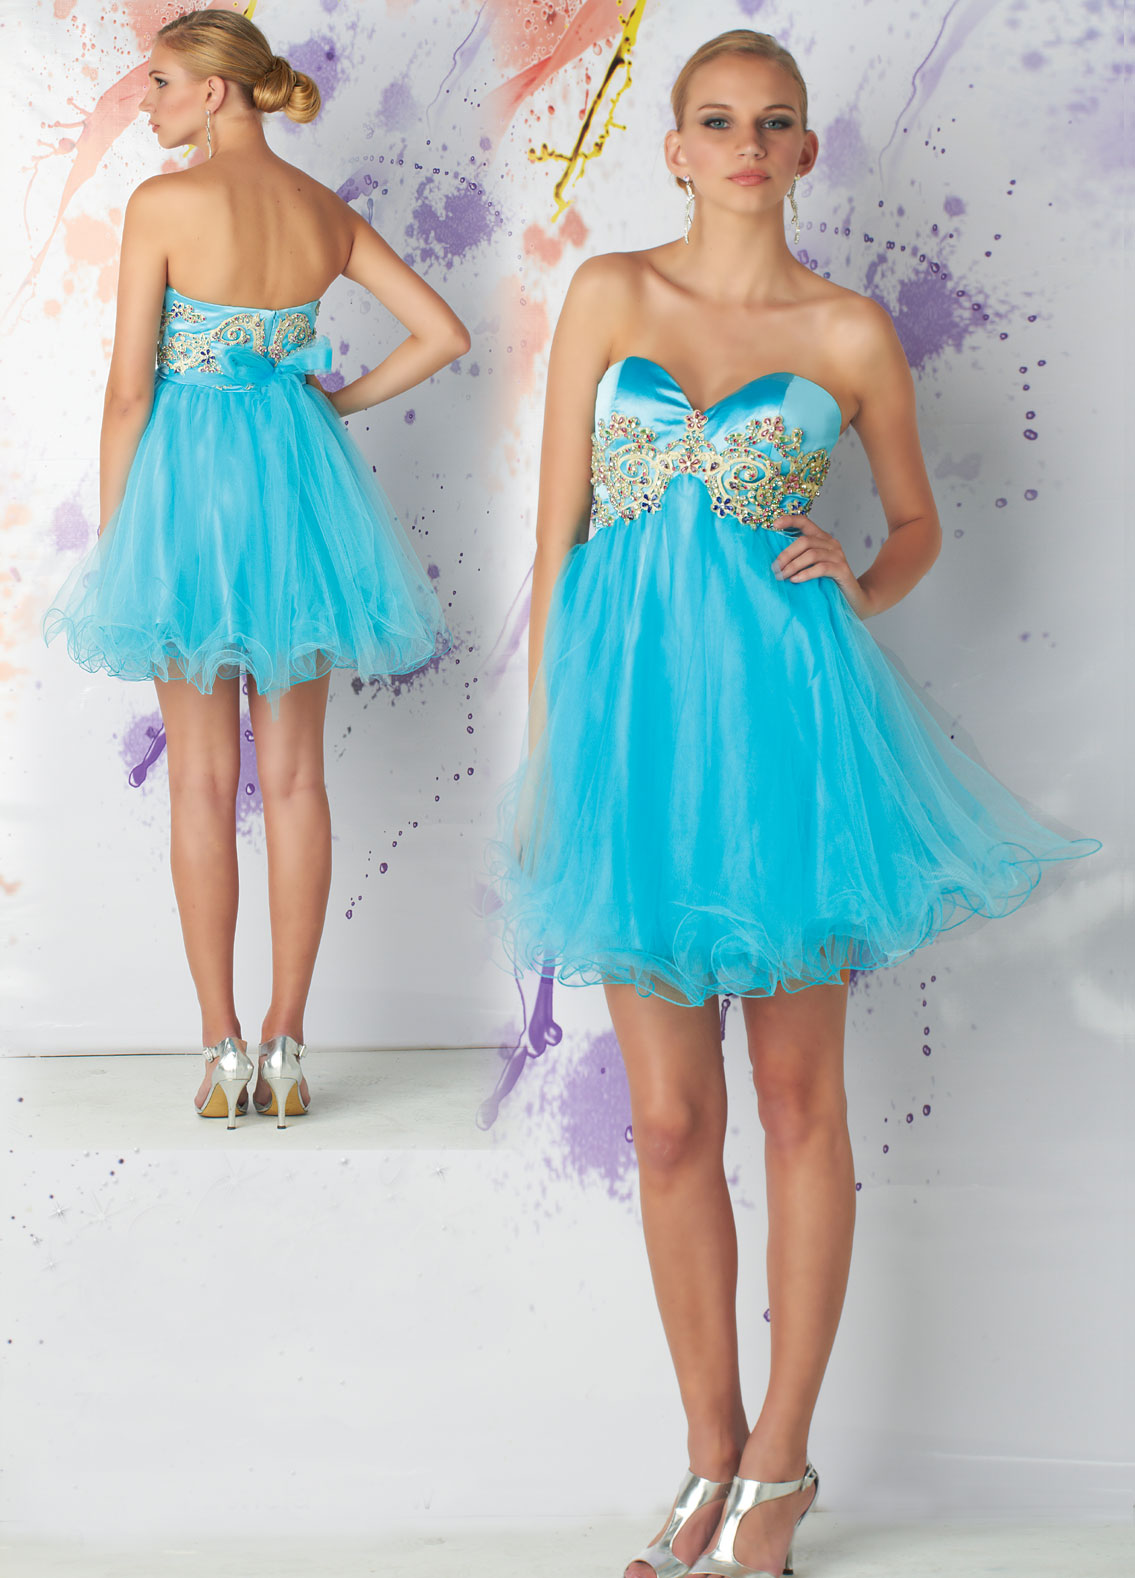 Short Prom dresses - chic short prom dresses.